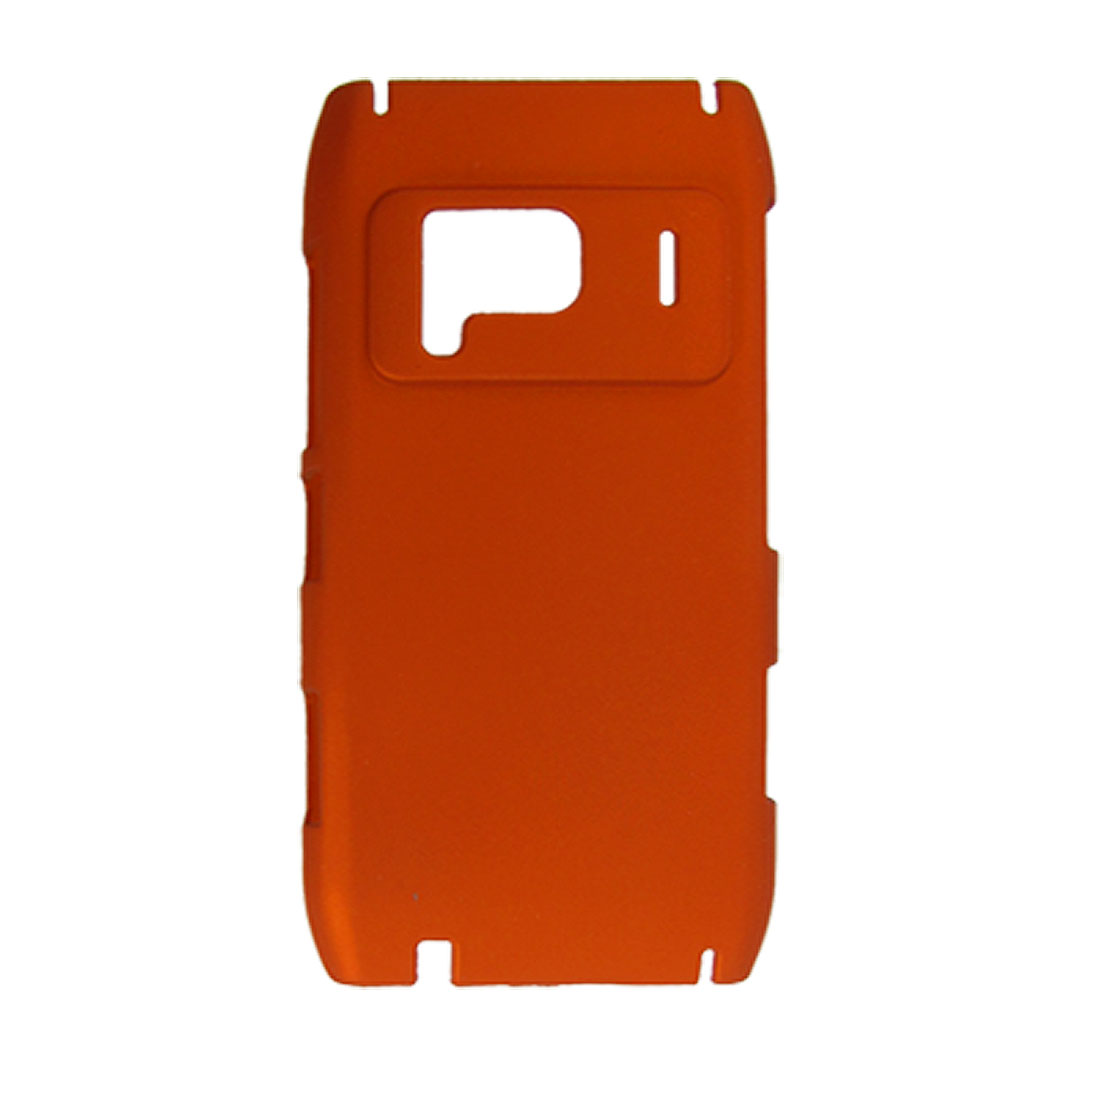 Orange-Red Rubberized Plastic Back Case for Nokia N8